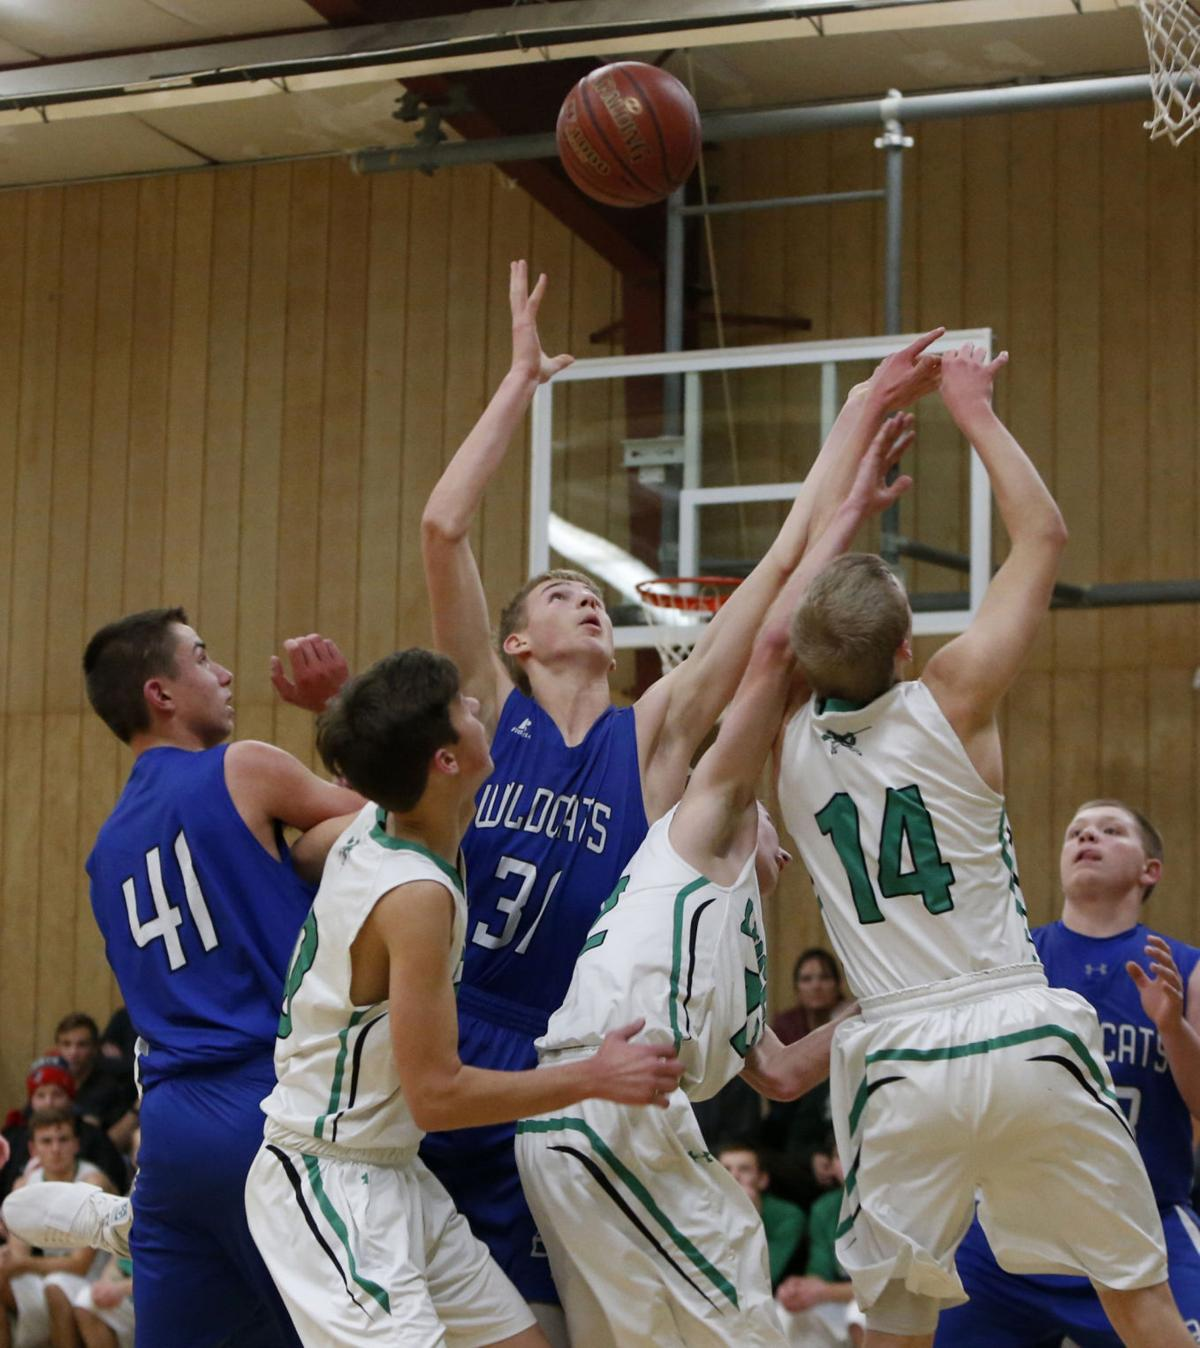 Wildcats split pair of closely-contested games